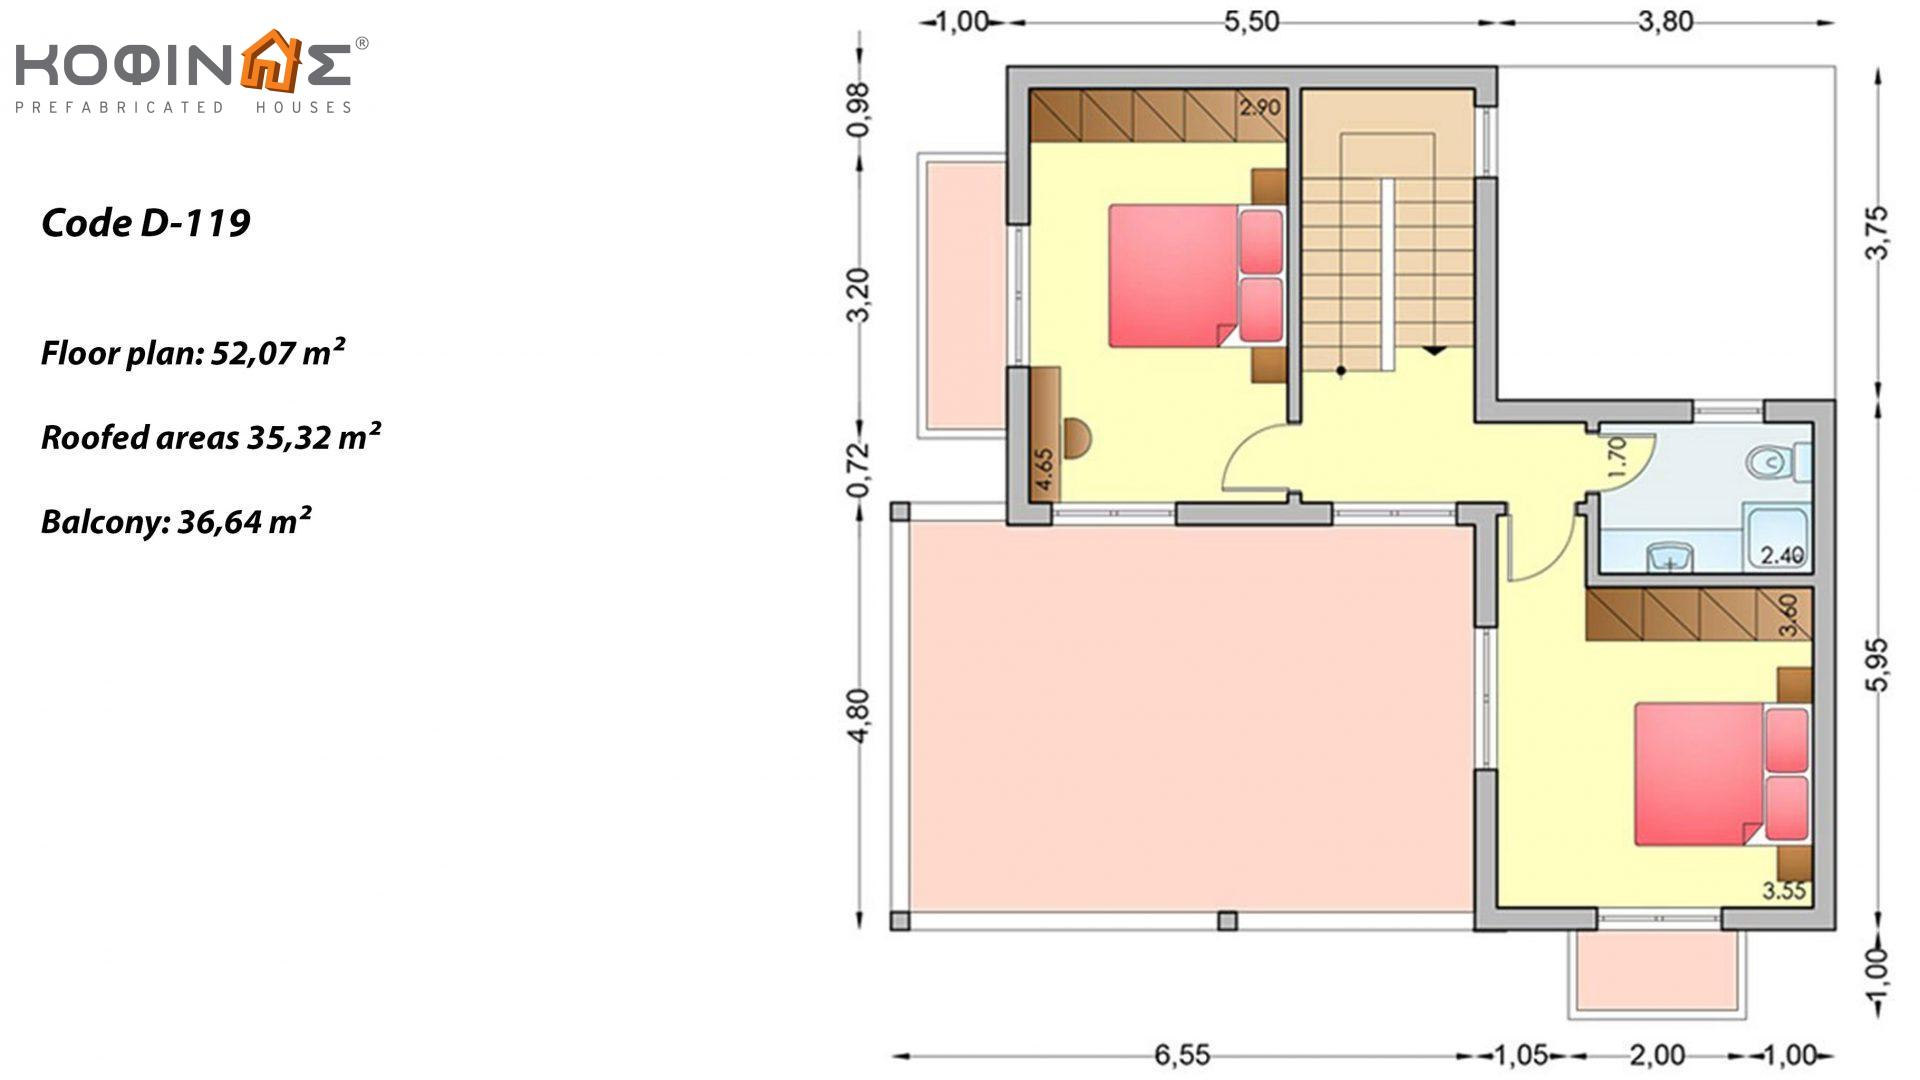 2-story house D-119, total surface of 119,35 m²,roofed areas 14,22 m²,balconies 10,30 m²